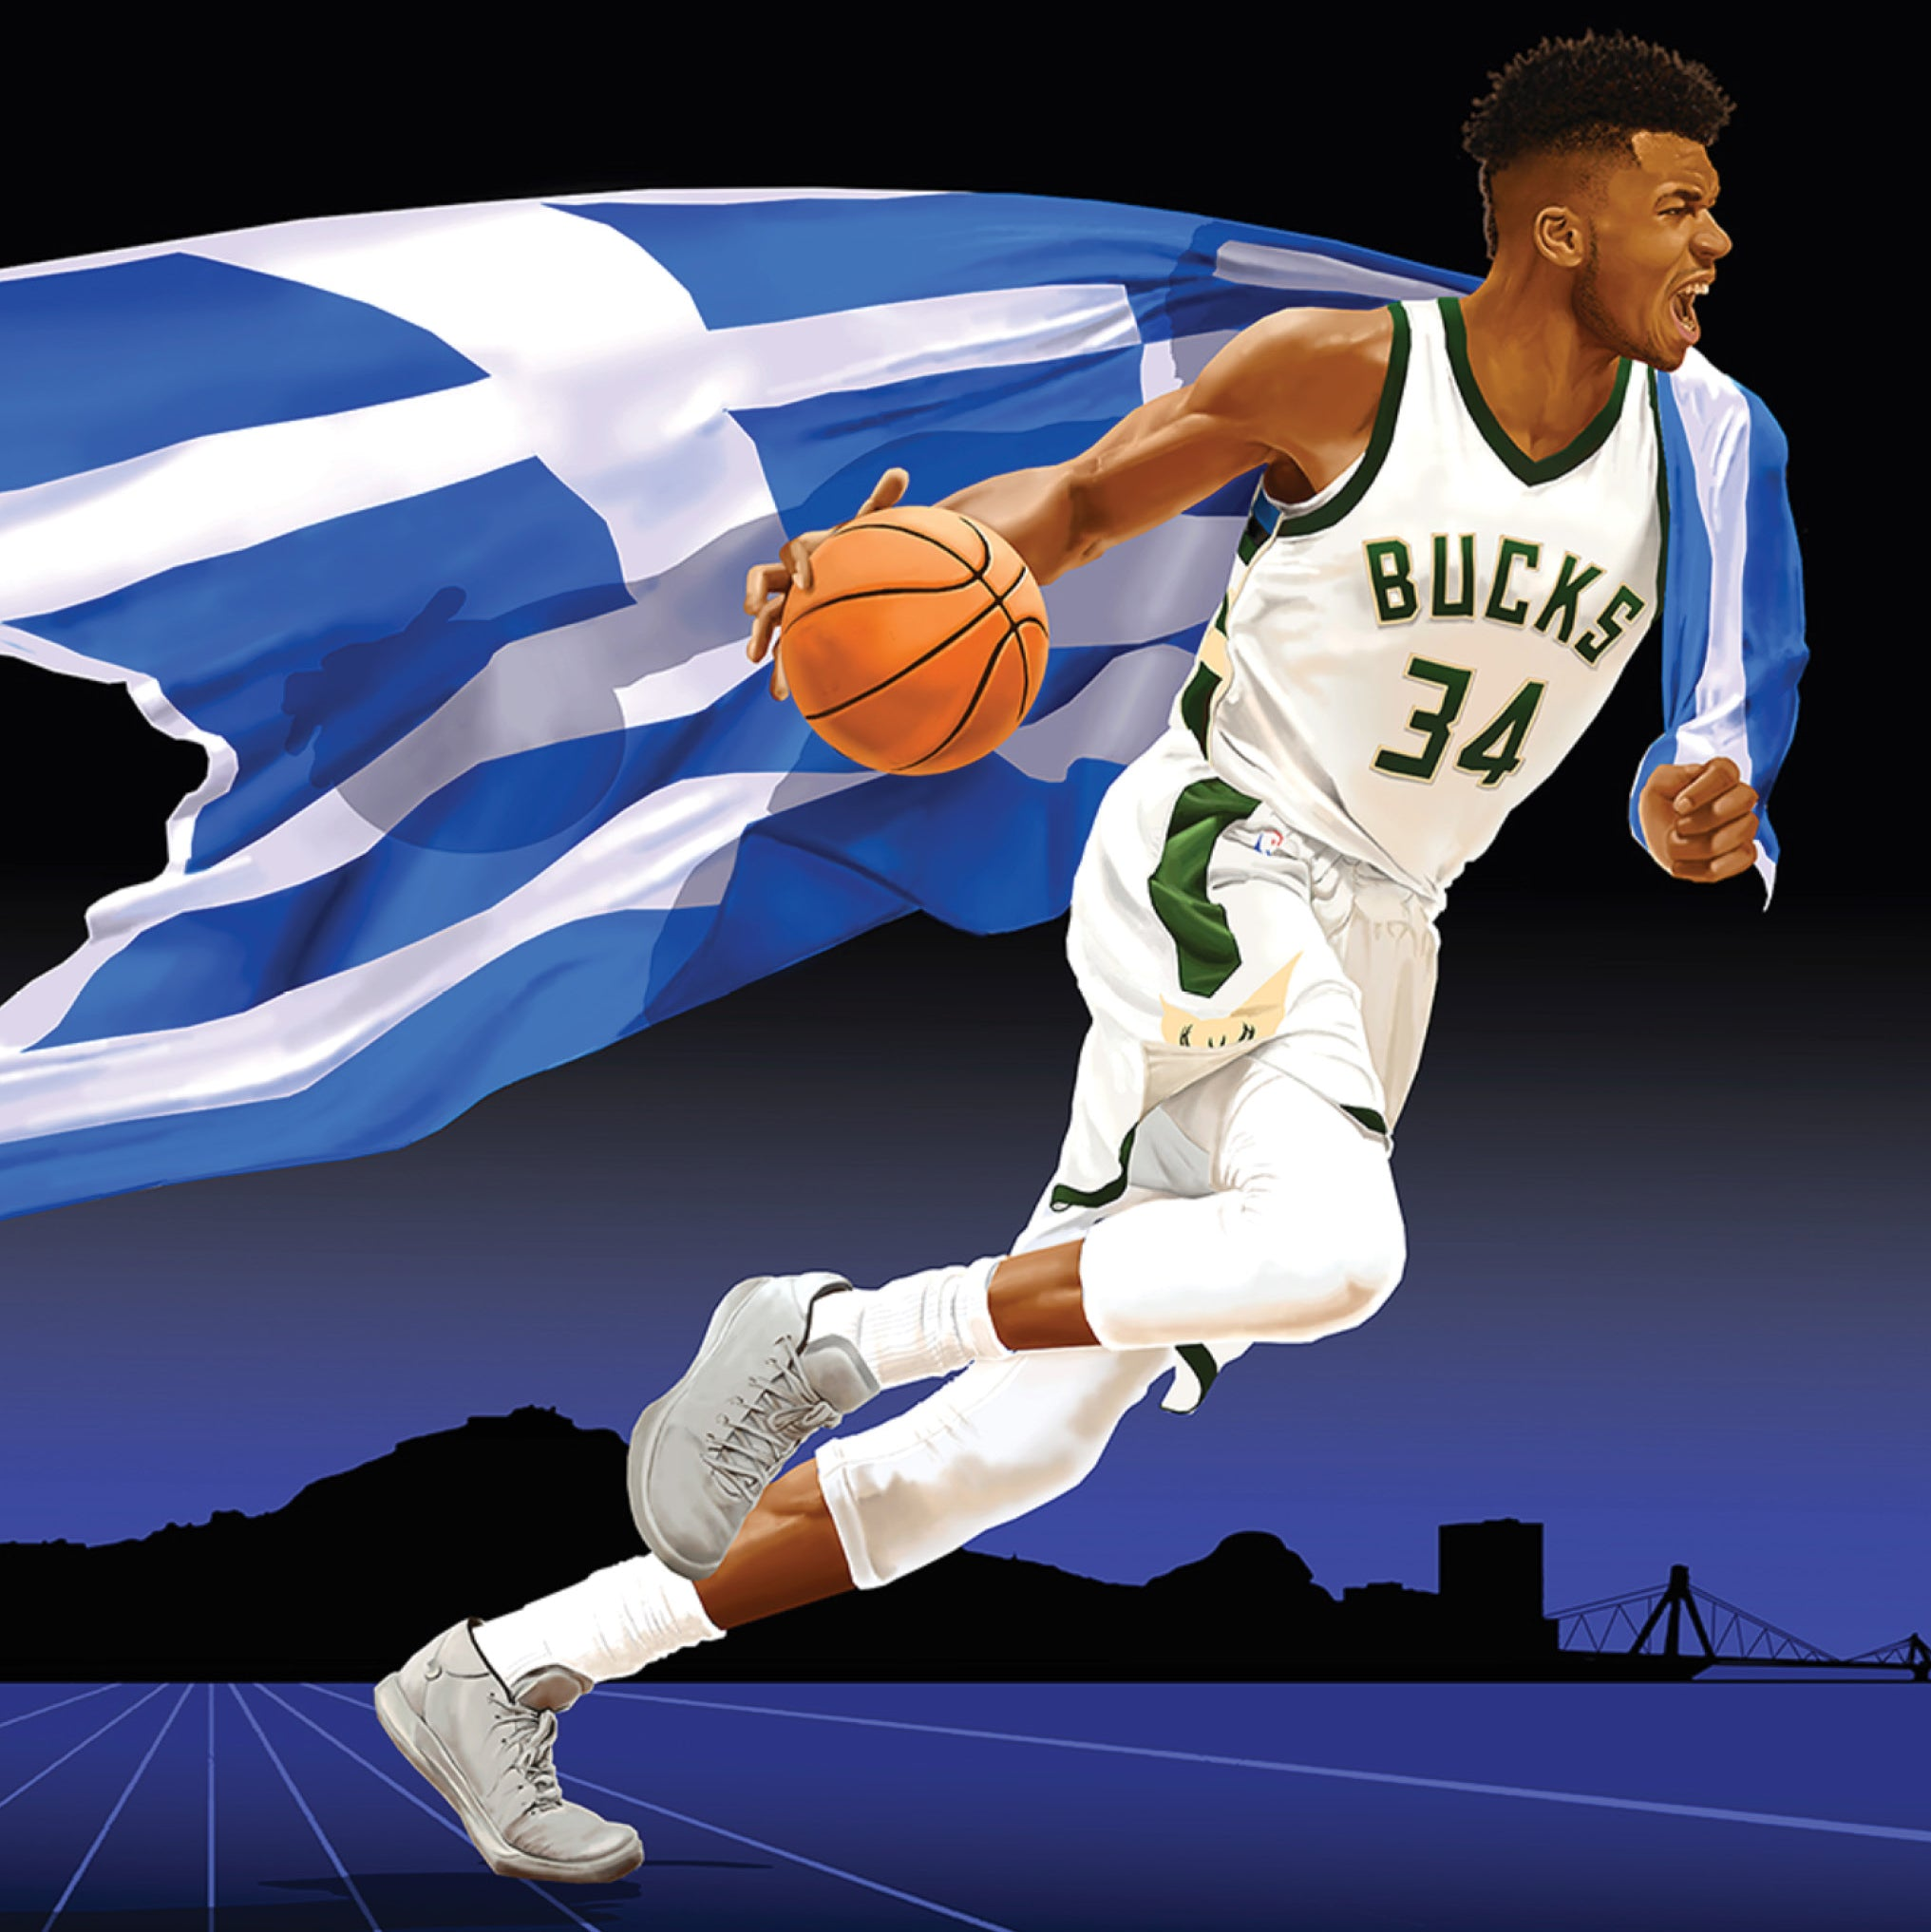 Giannis is mid-dribble with a basketball, carrying a large, billowing Greek flag. Behind him is a silhouette of Athens.